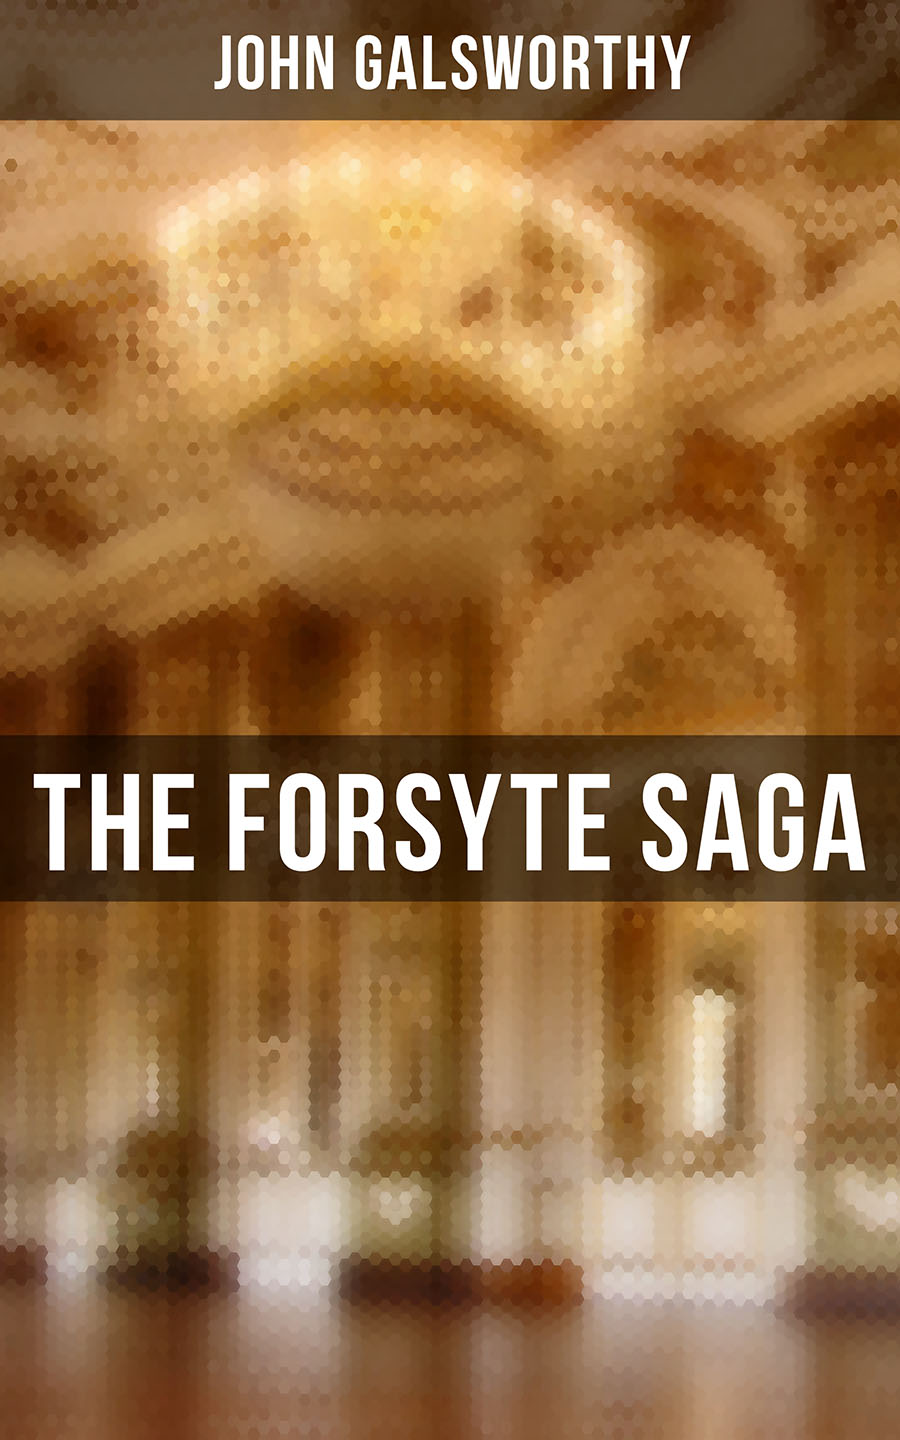 John Galsworthy THE FORSYTE SAGA - Complete Series: The Man of Property, Indian Summer of a Forsyte, In Chancery, Awakening & To Let robert leckie leckie a few acres of snow the saga of the french and indian wars